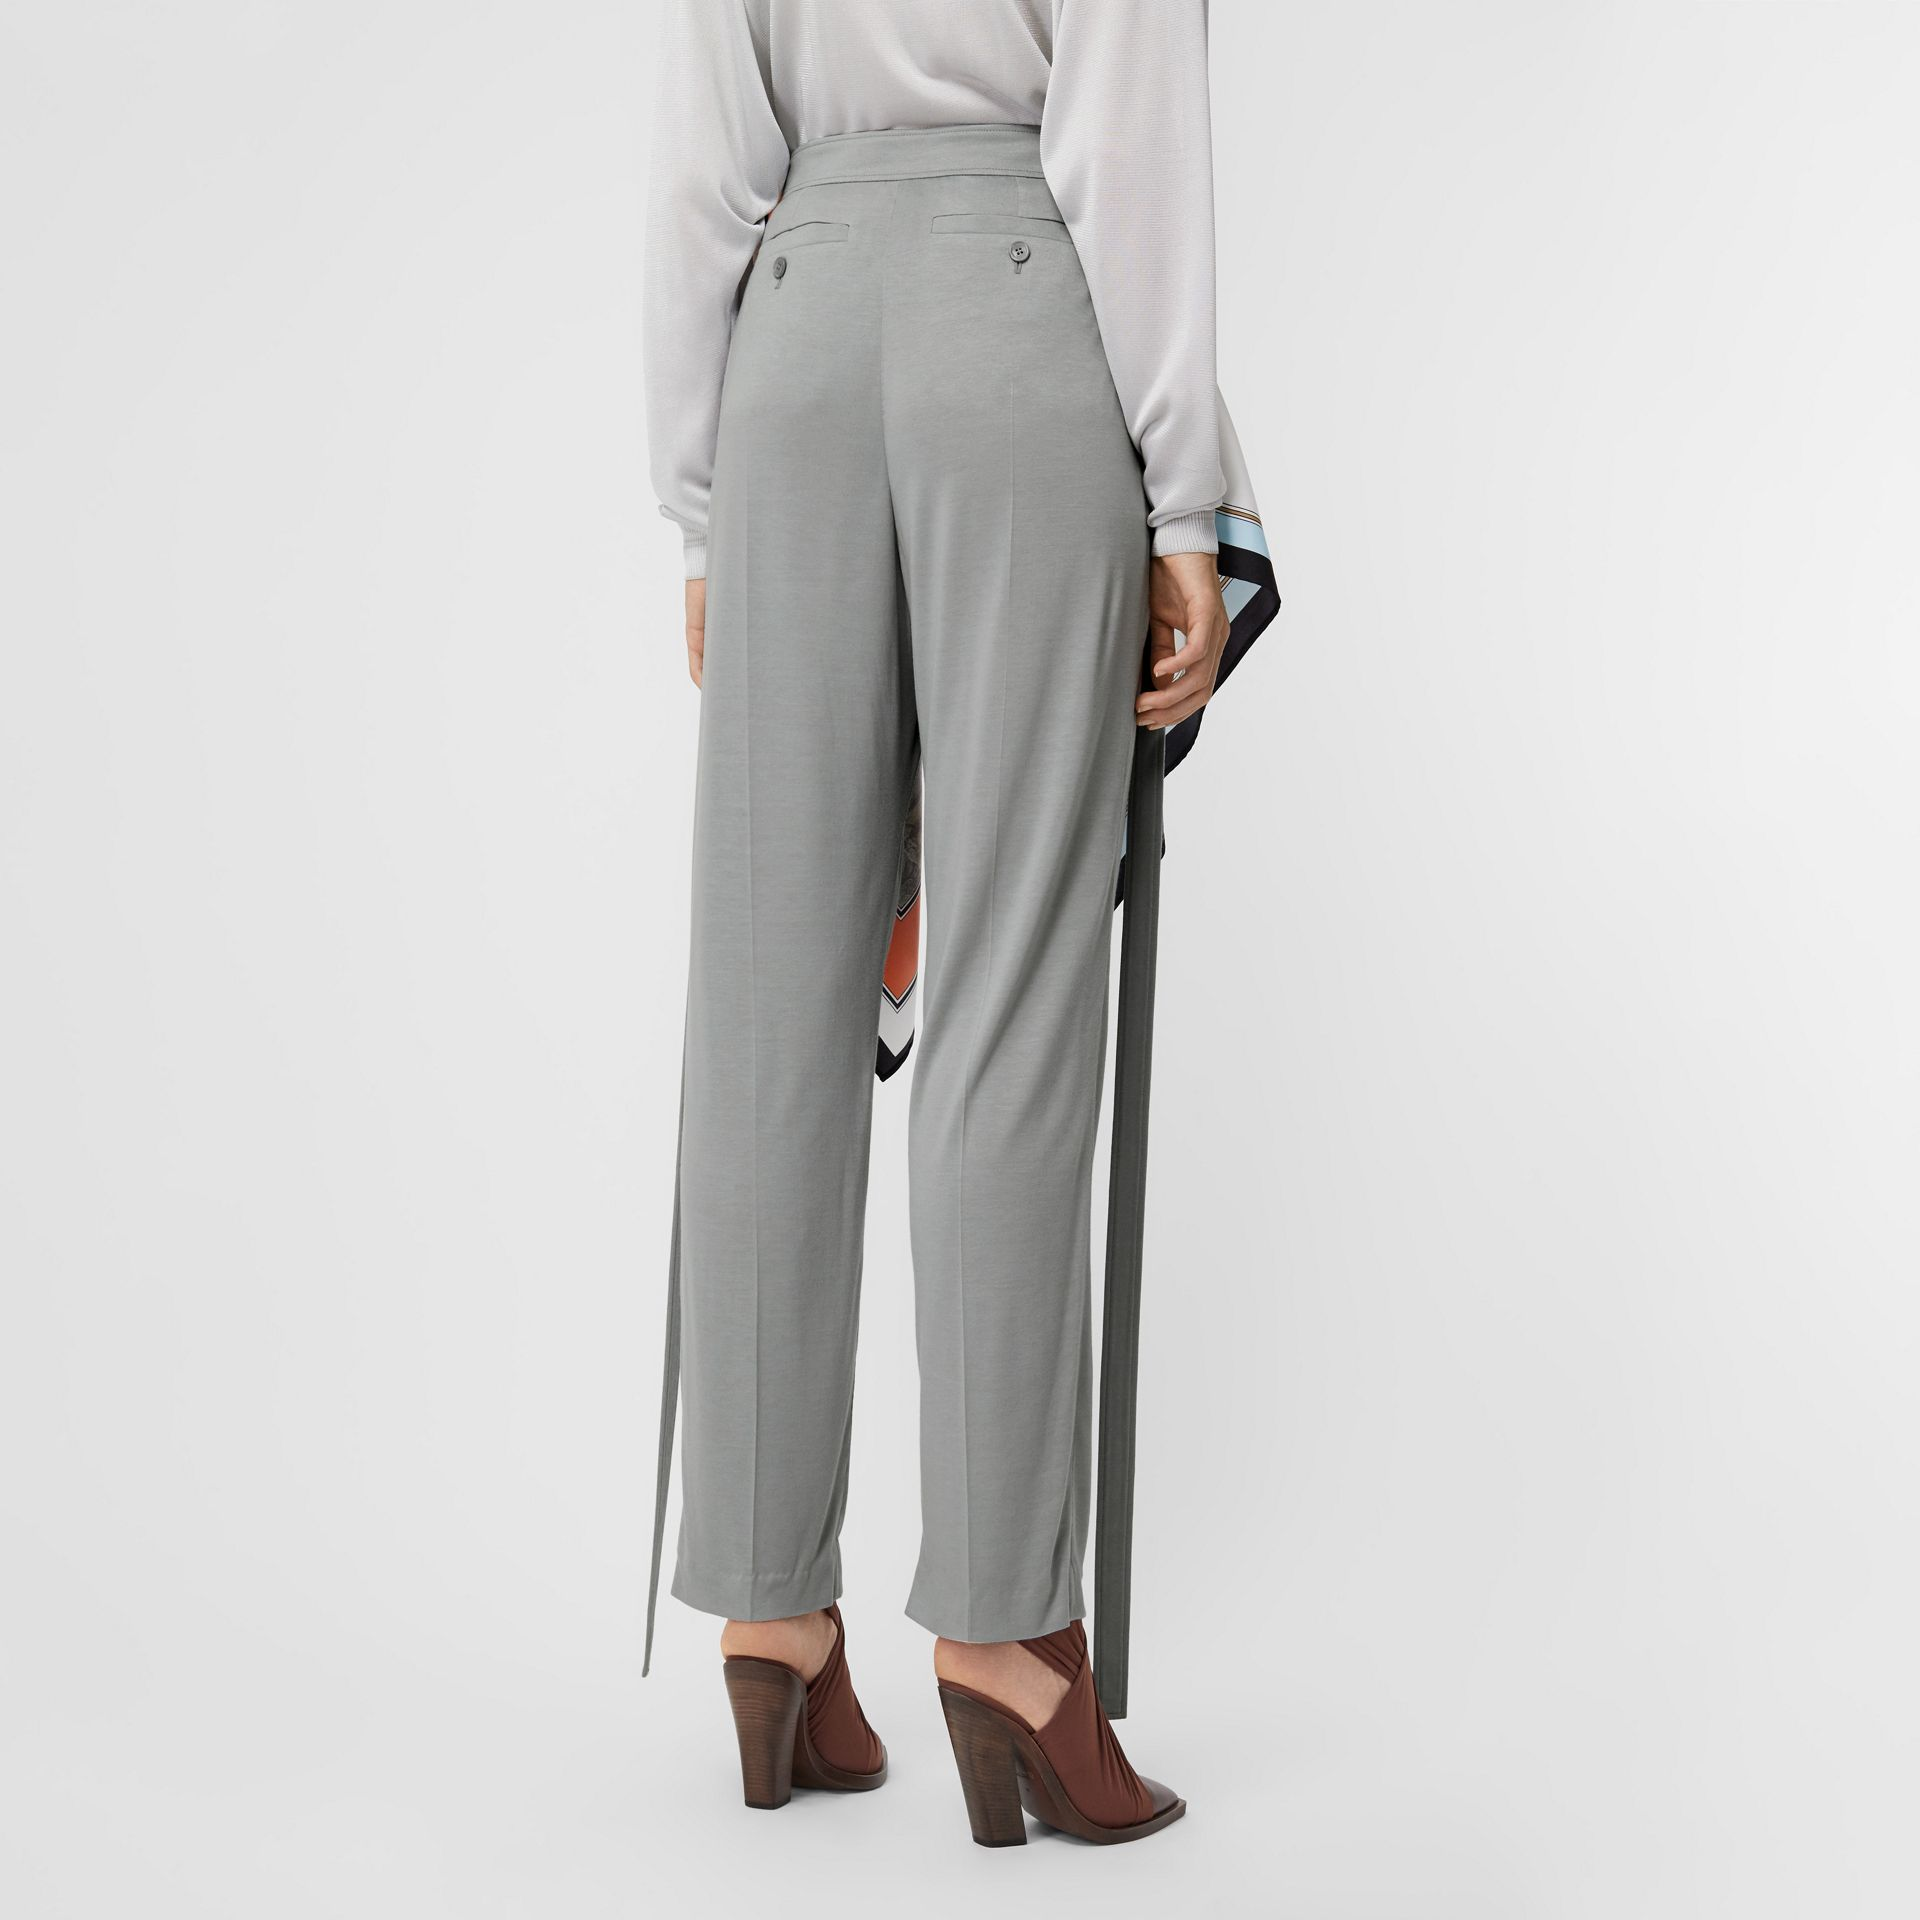 Strap Detail Jersey Tailored Trousers in Heather Melange - Women | Burberry - gallery image 2